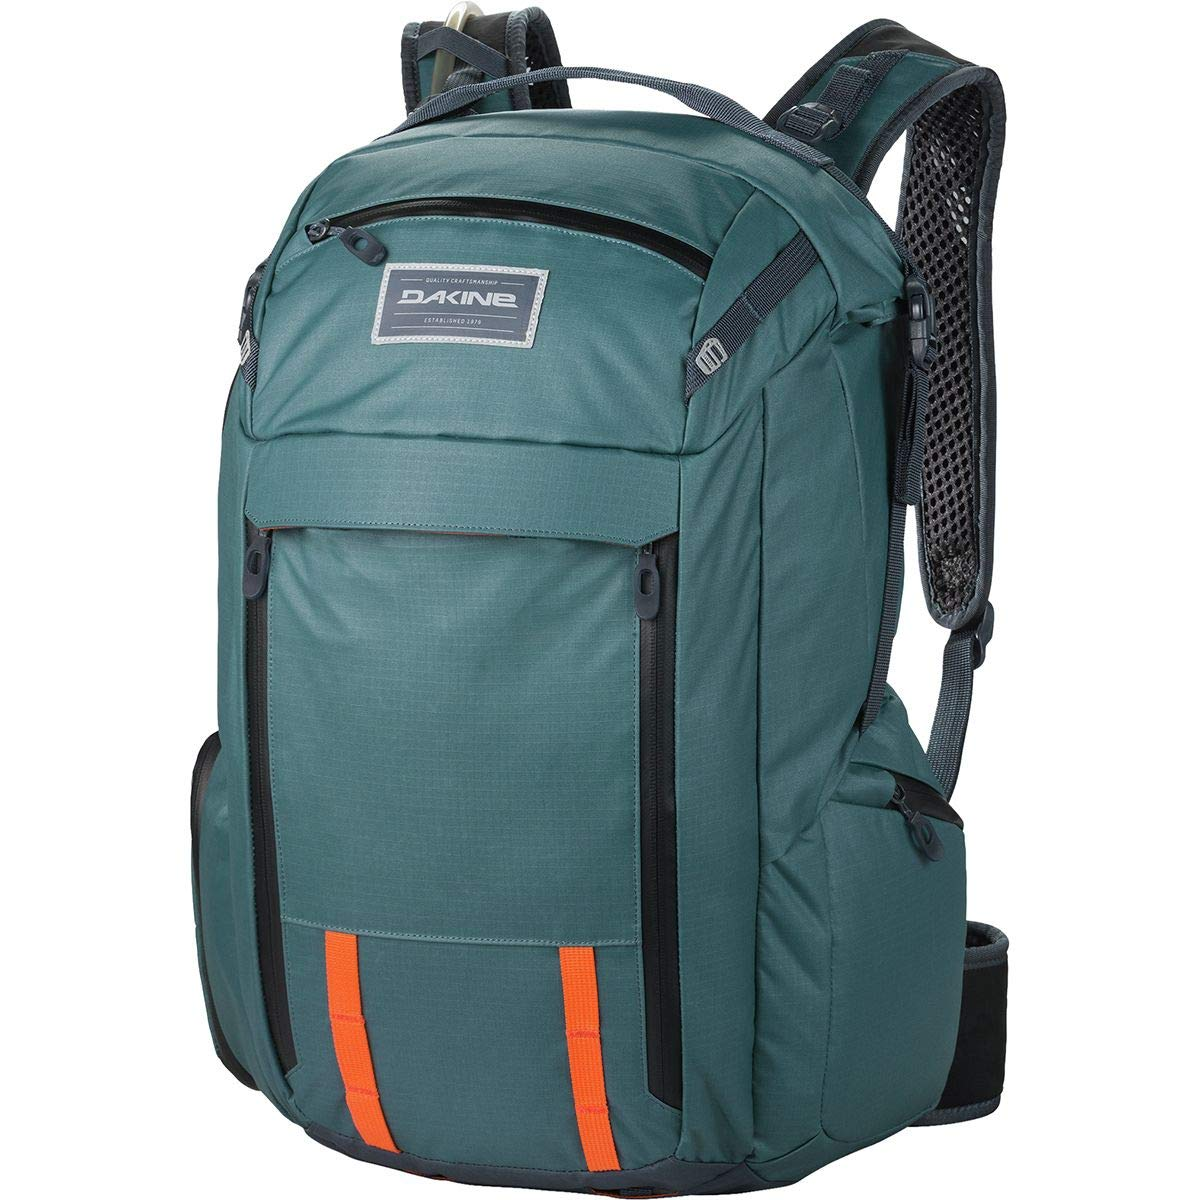 Dakine Seeker 24L Backpack Slate Blue, One Size by Dakine